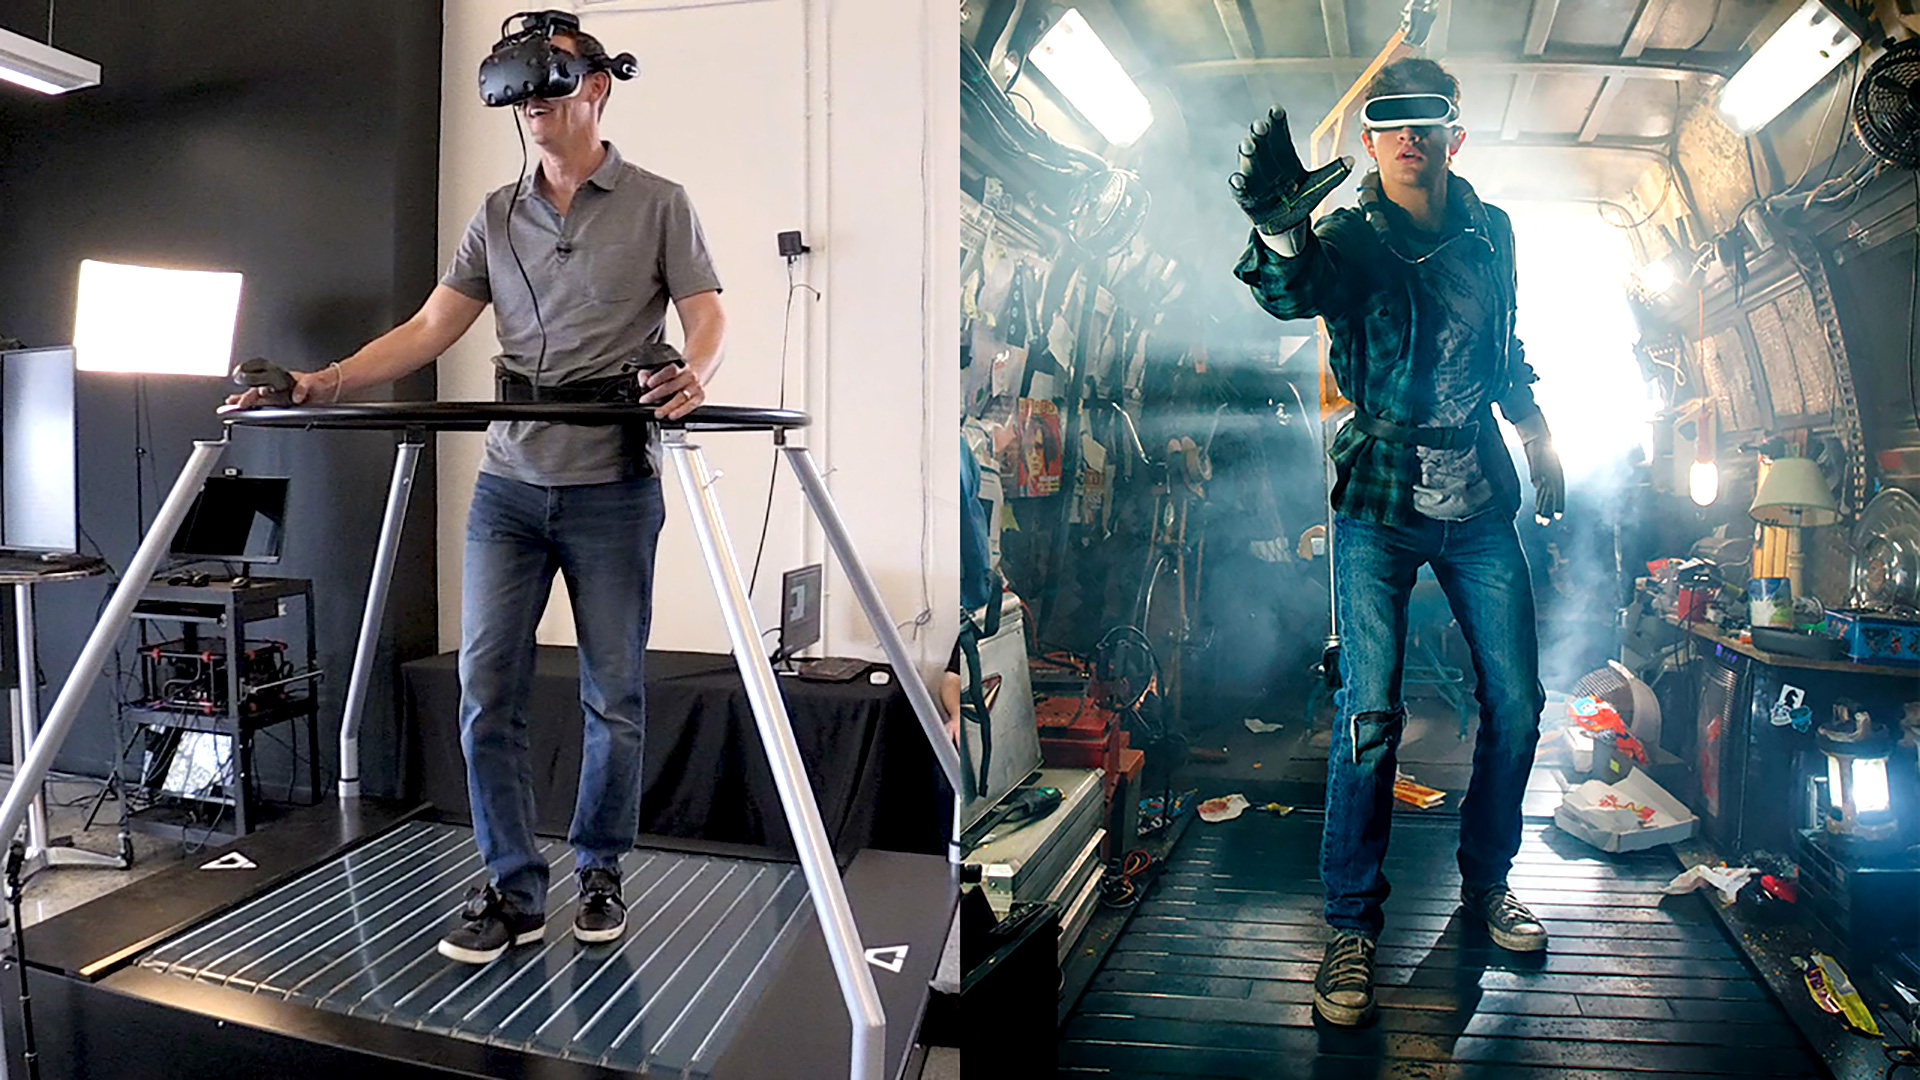 VR Omnidirectional Treadmill